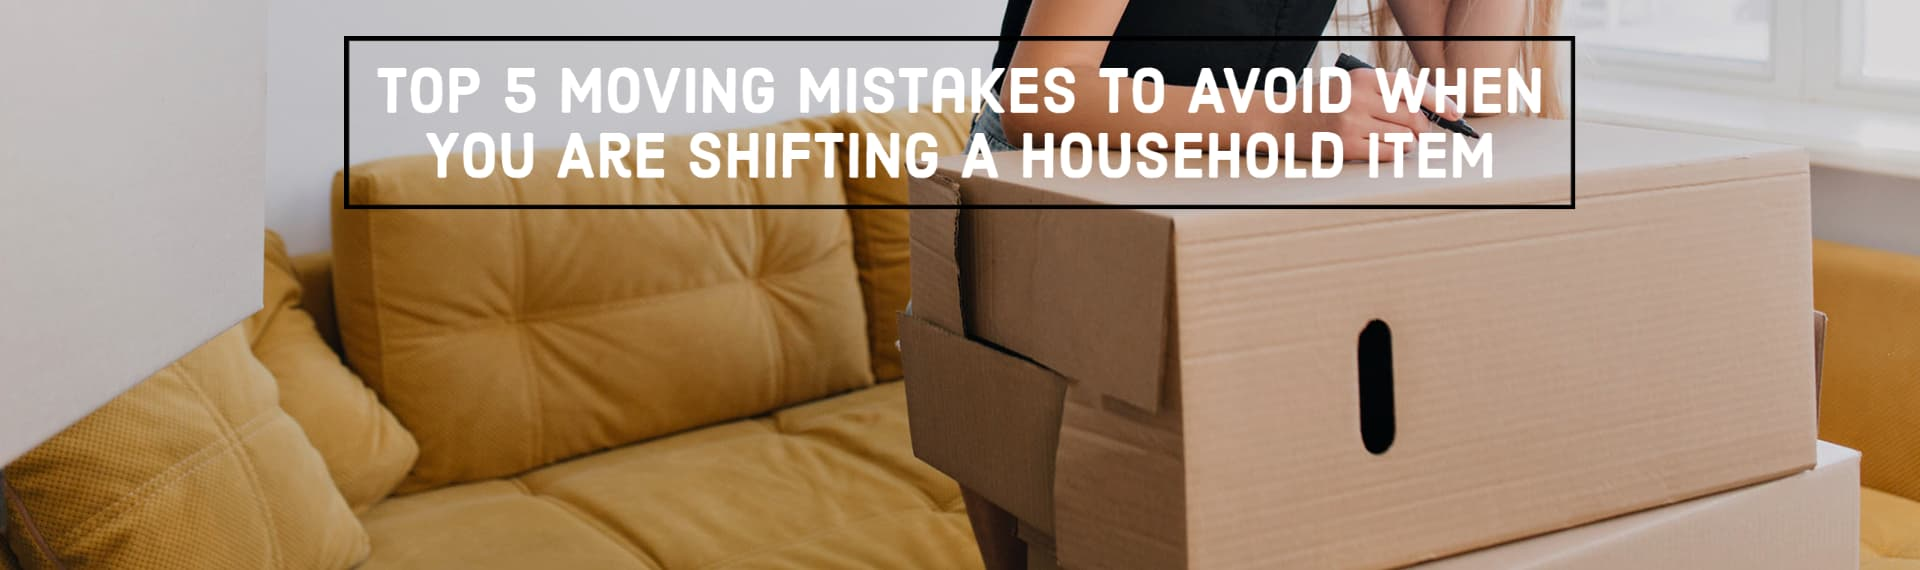 Top 5 Moving Mistakes To Avoid When You Are Shifting A Household Item